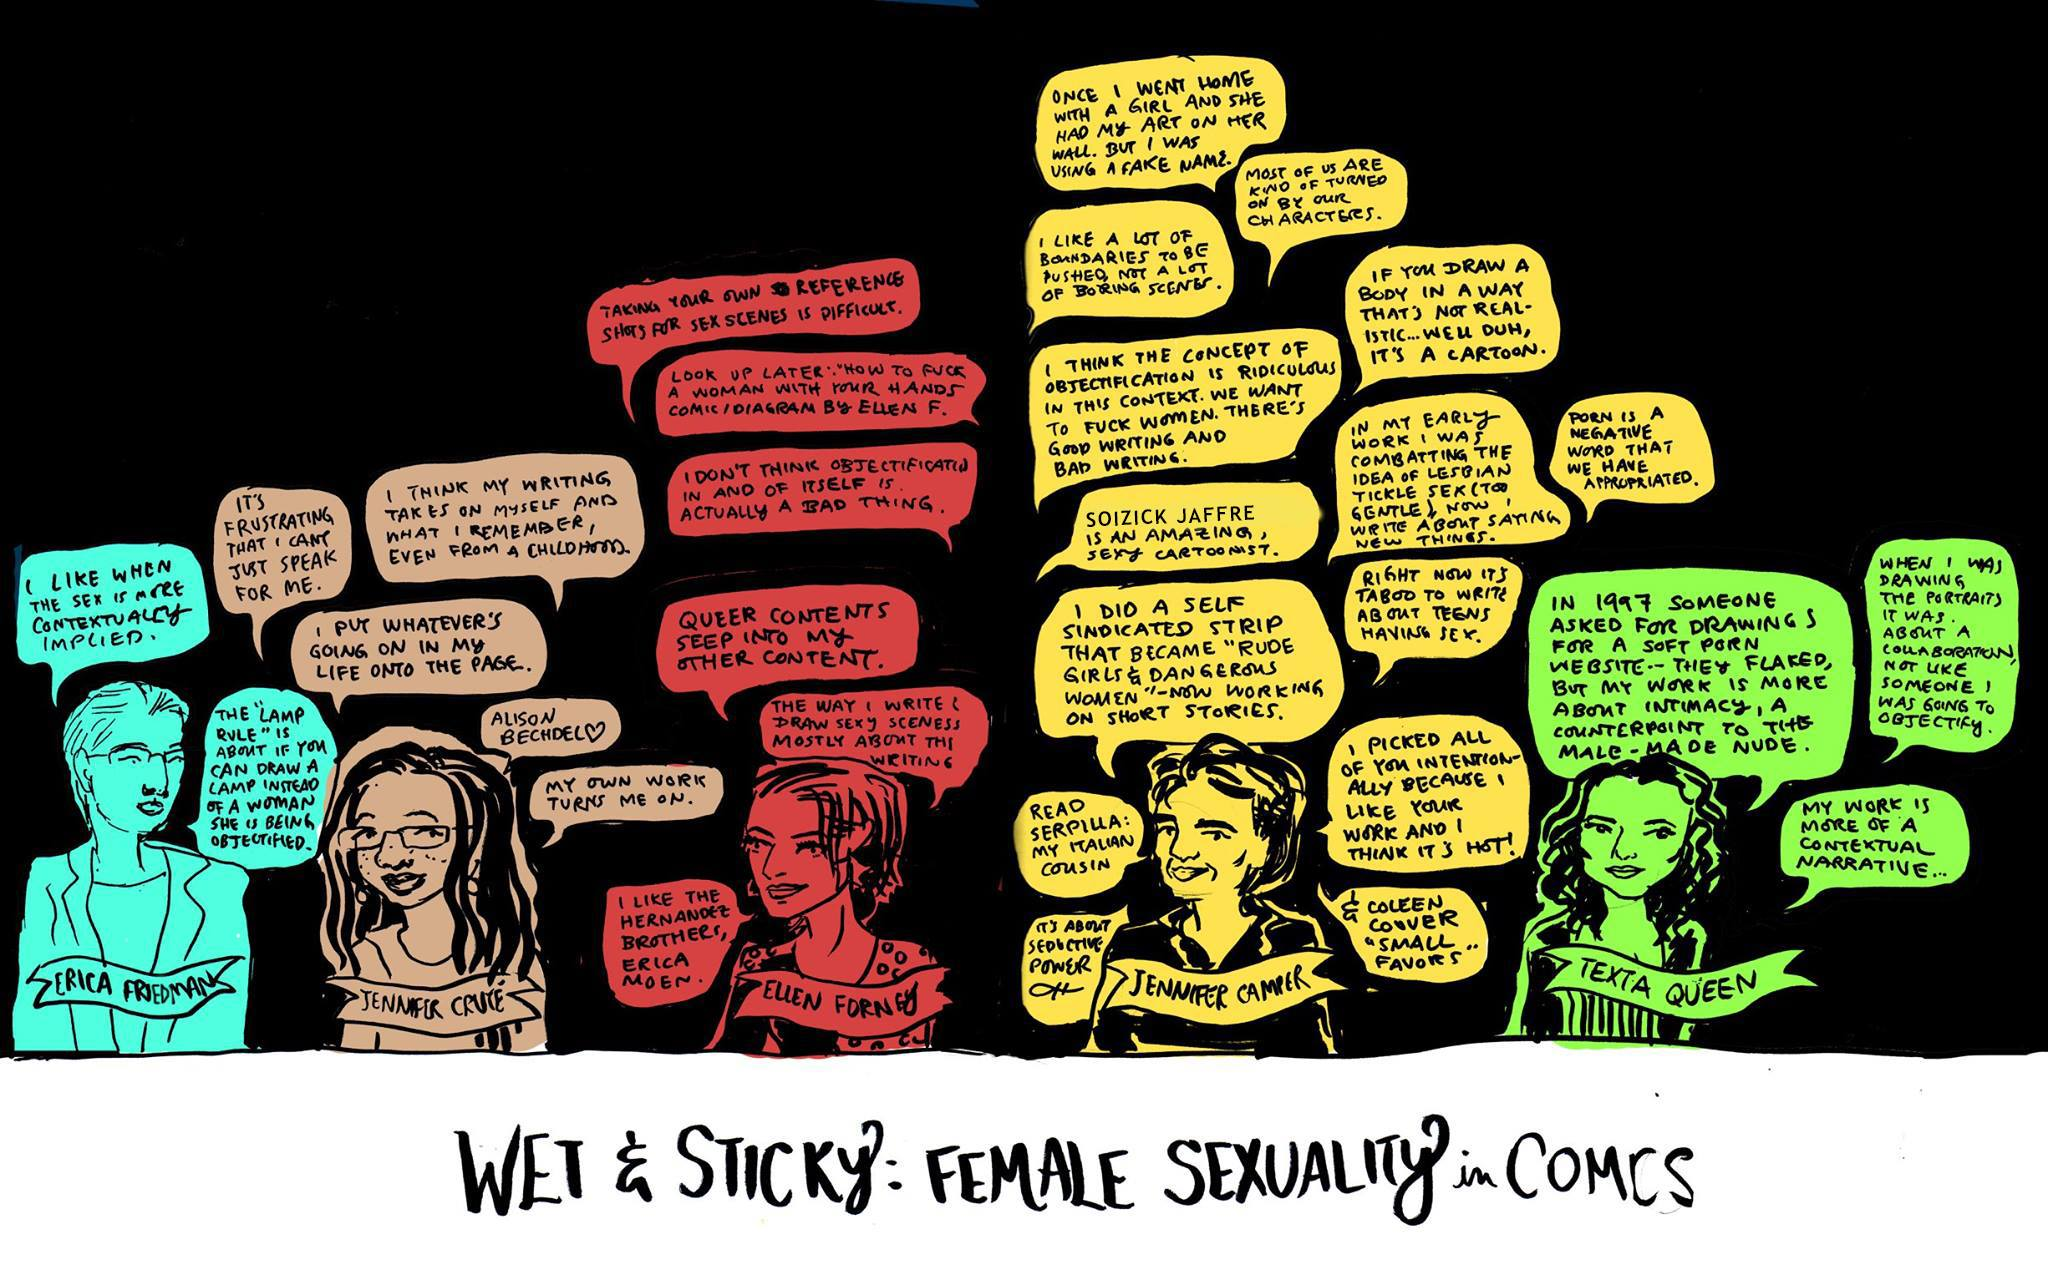 Panel: Female Sexuality in Comics